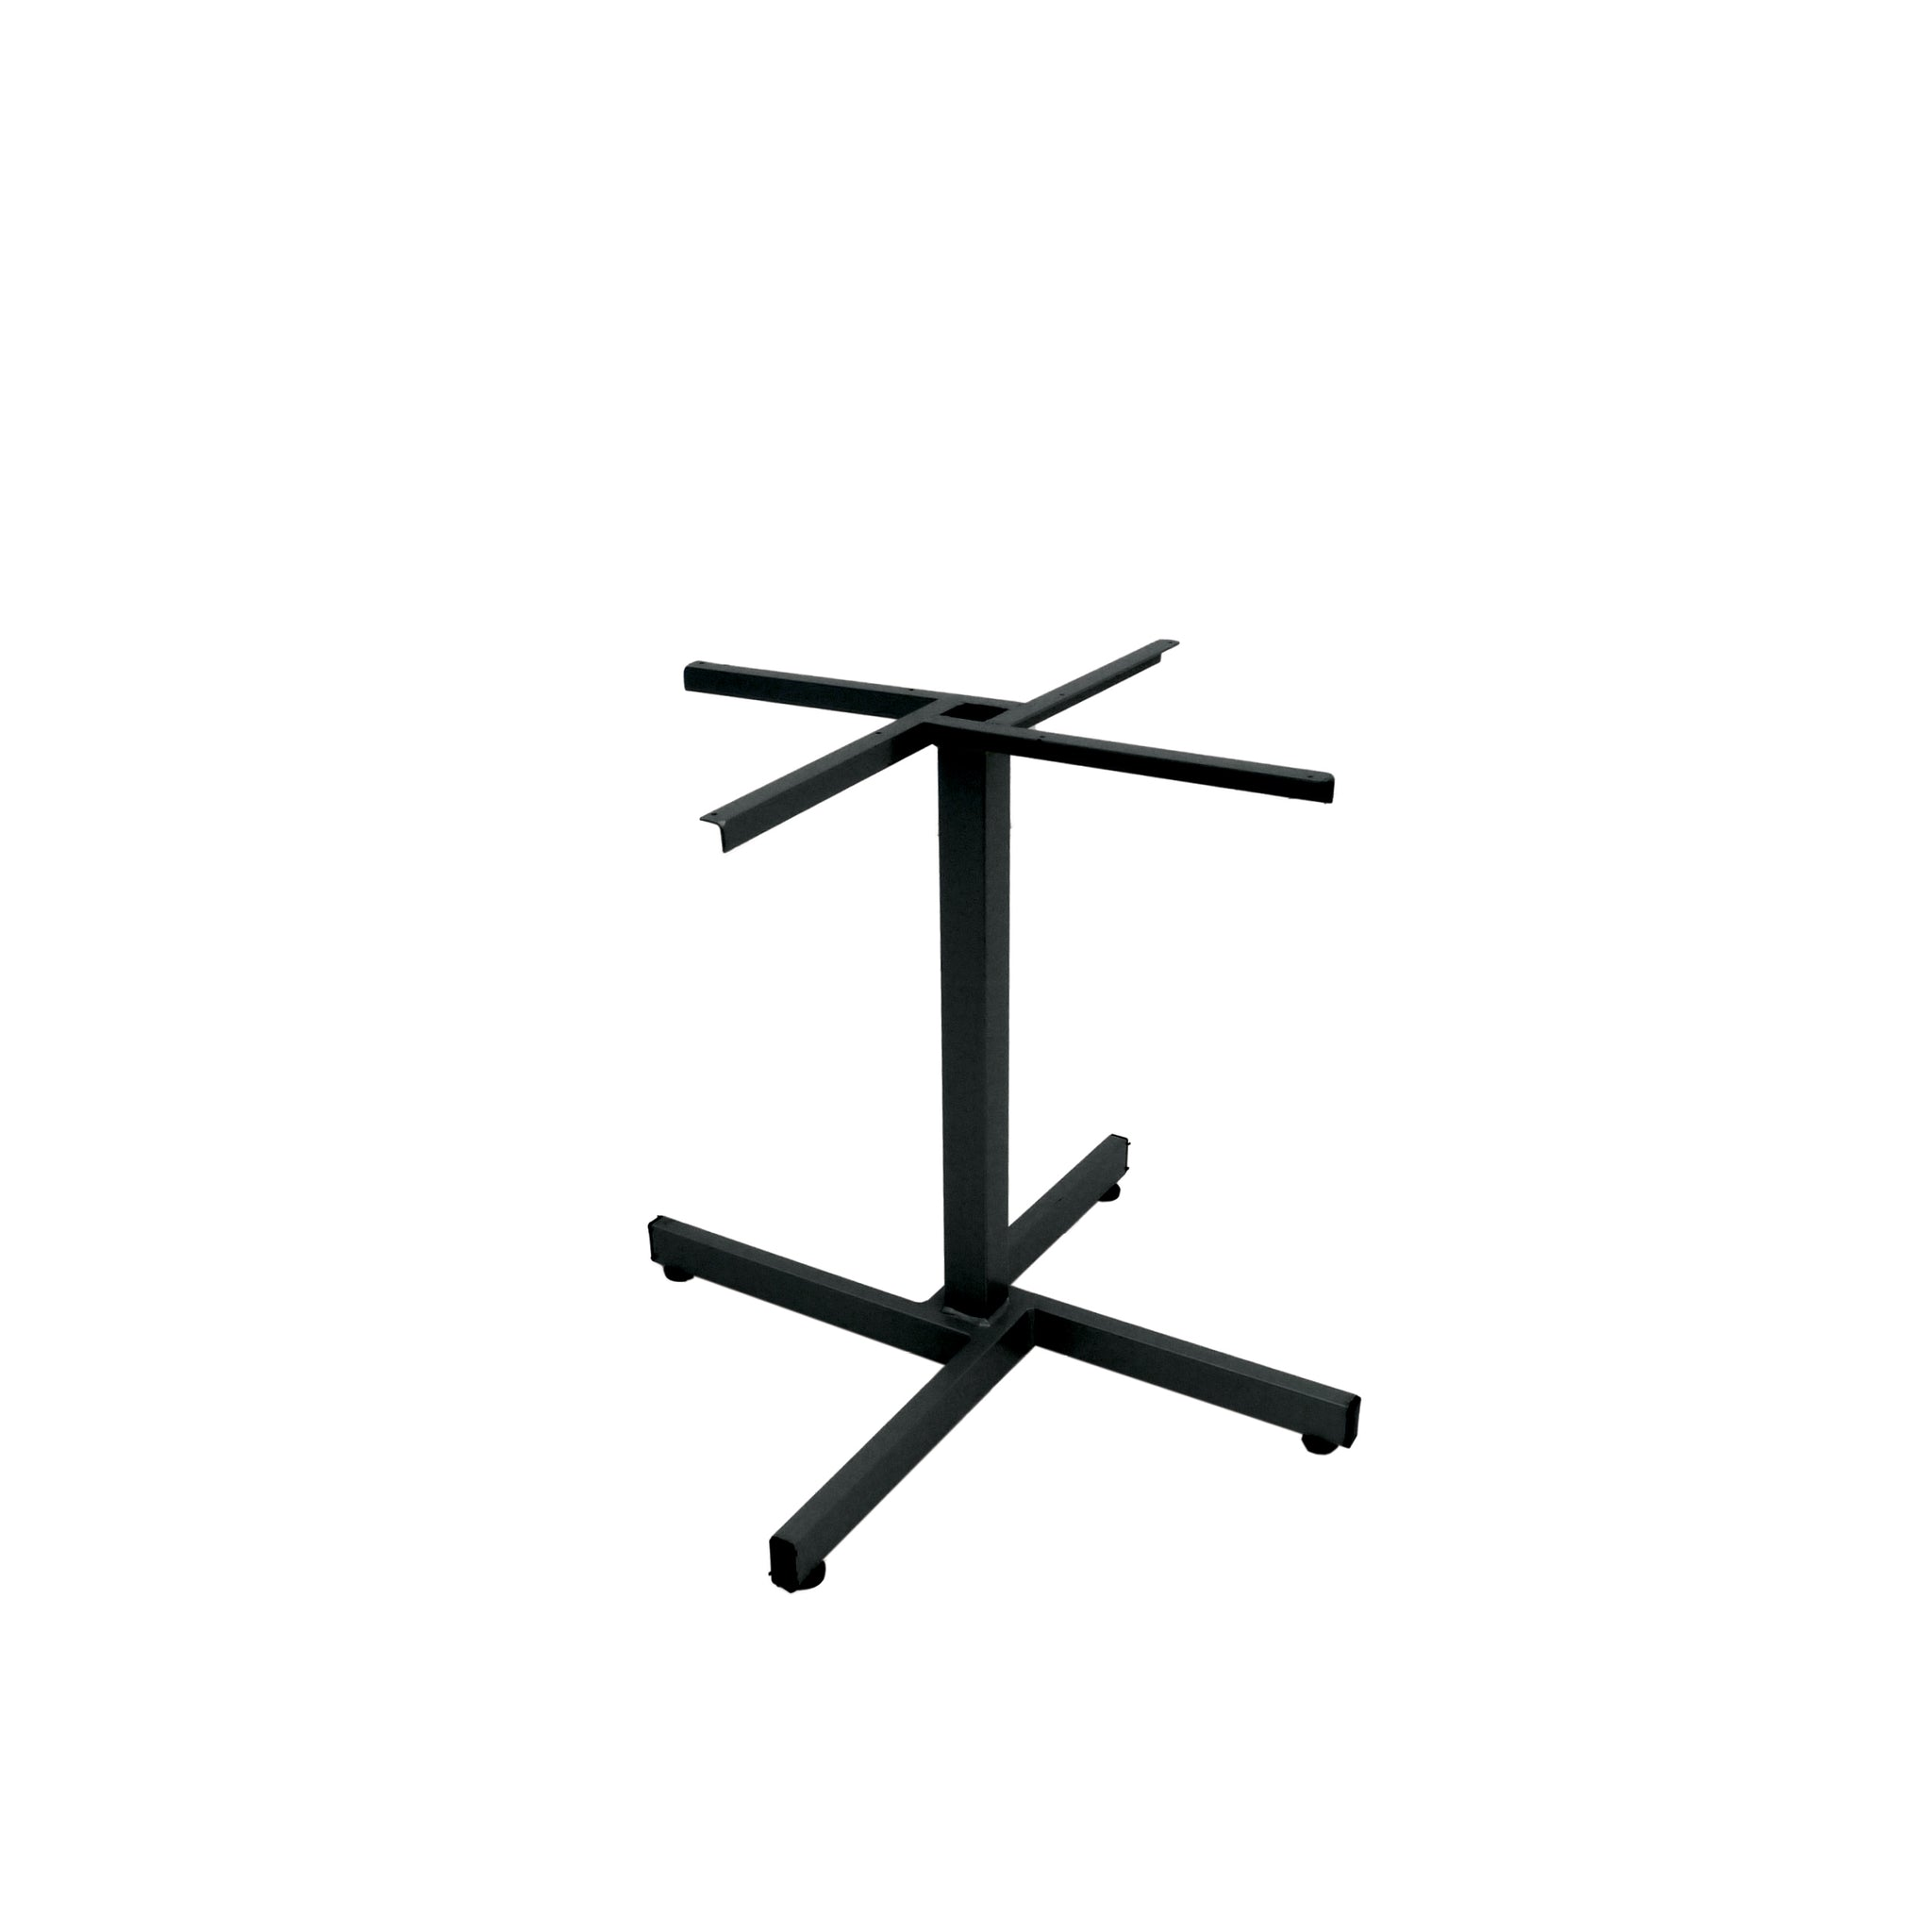 Hedcor Table base 001